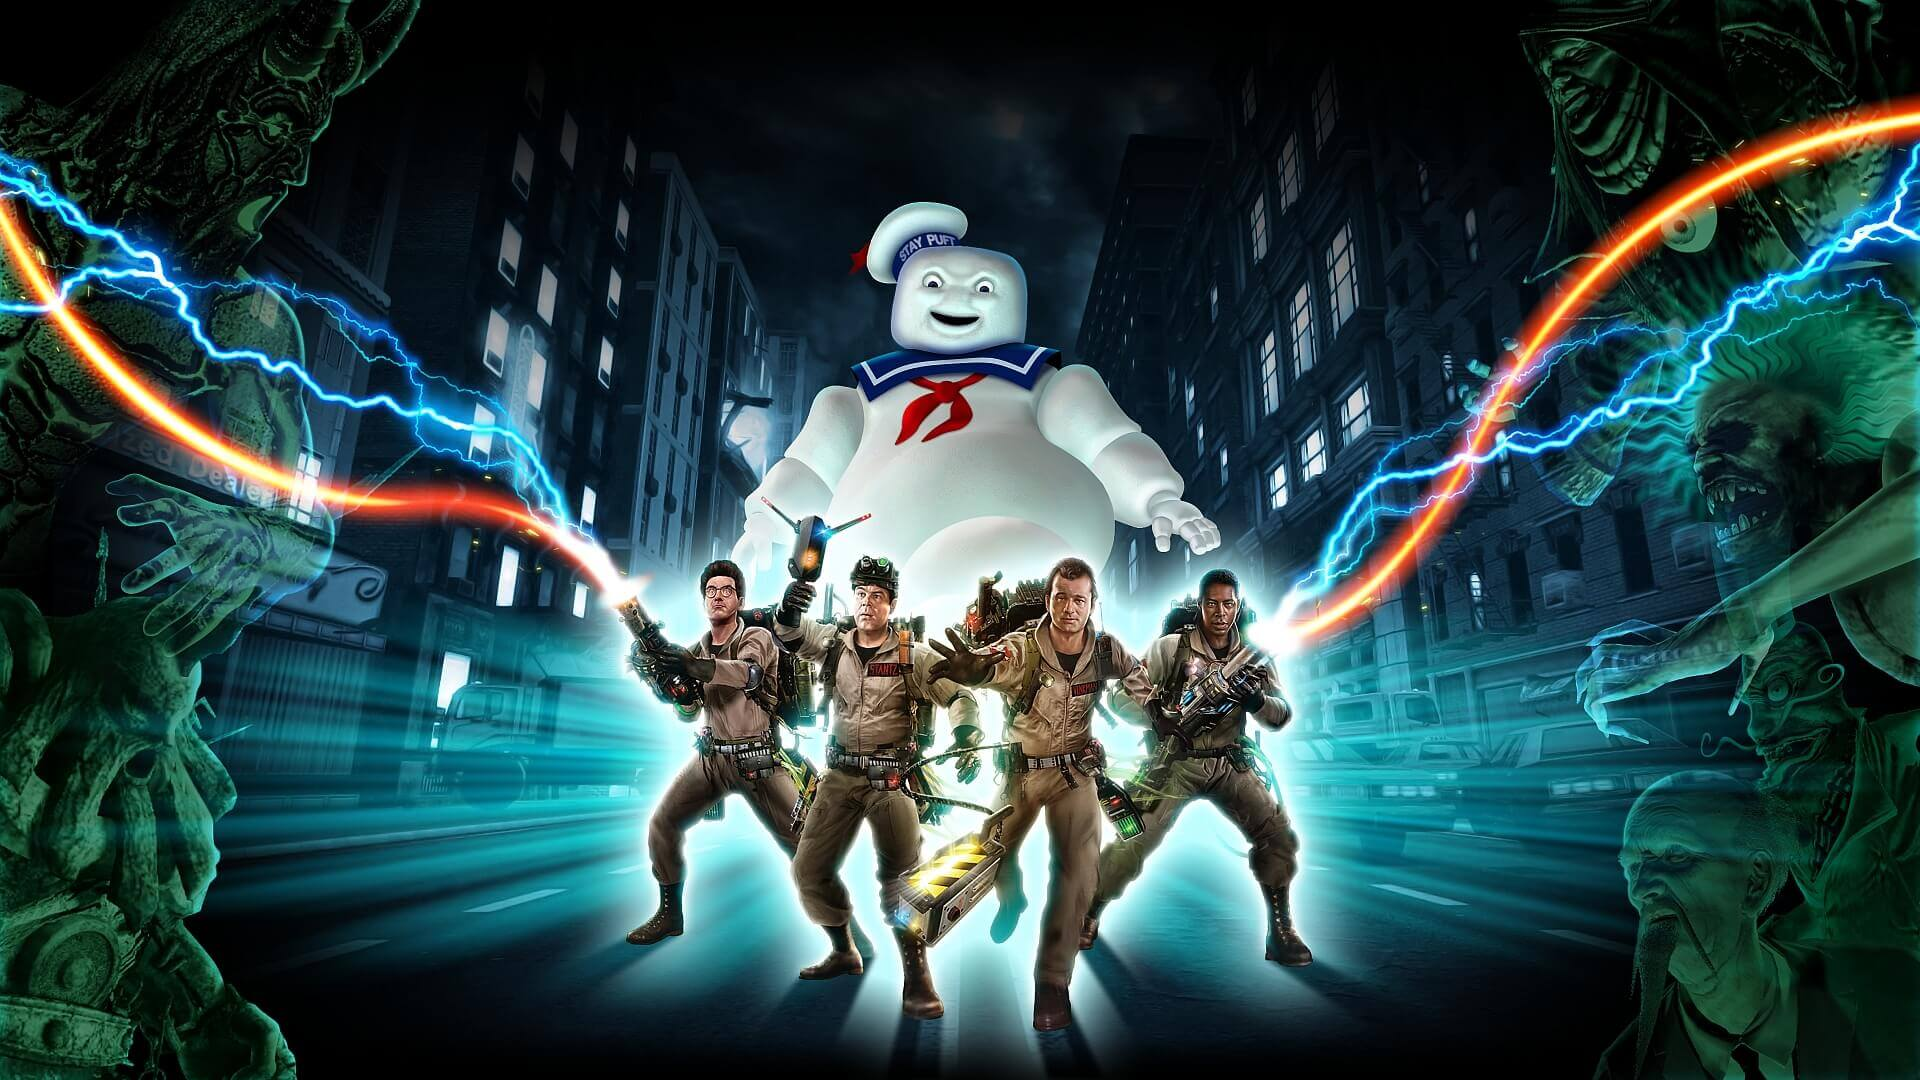 GhostbustersTVGRemastered review featured